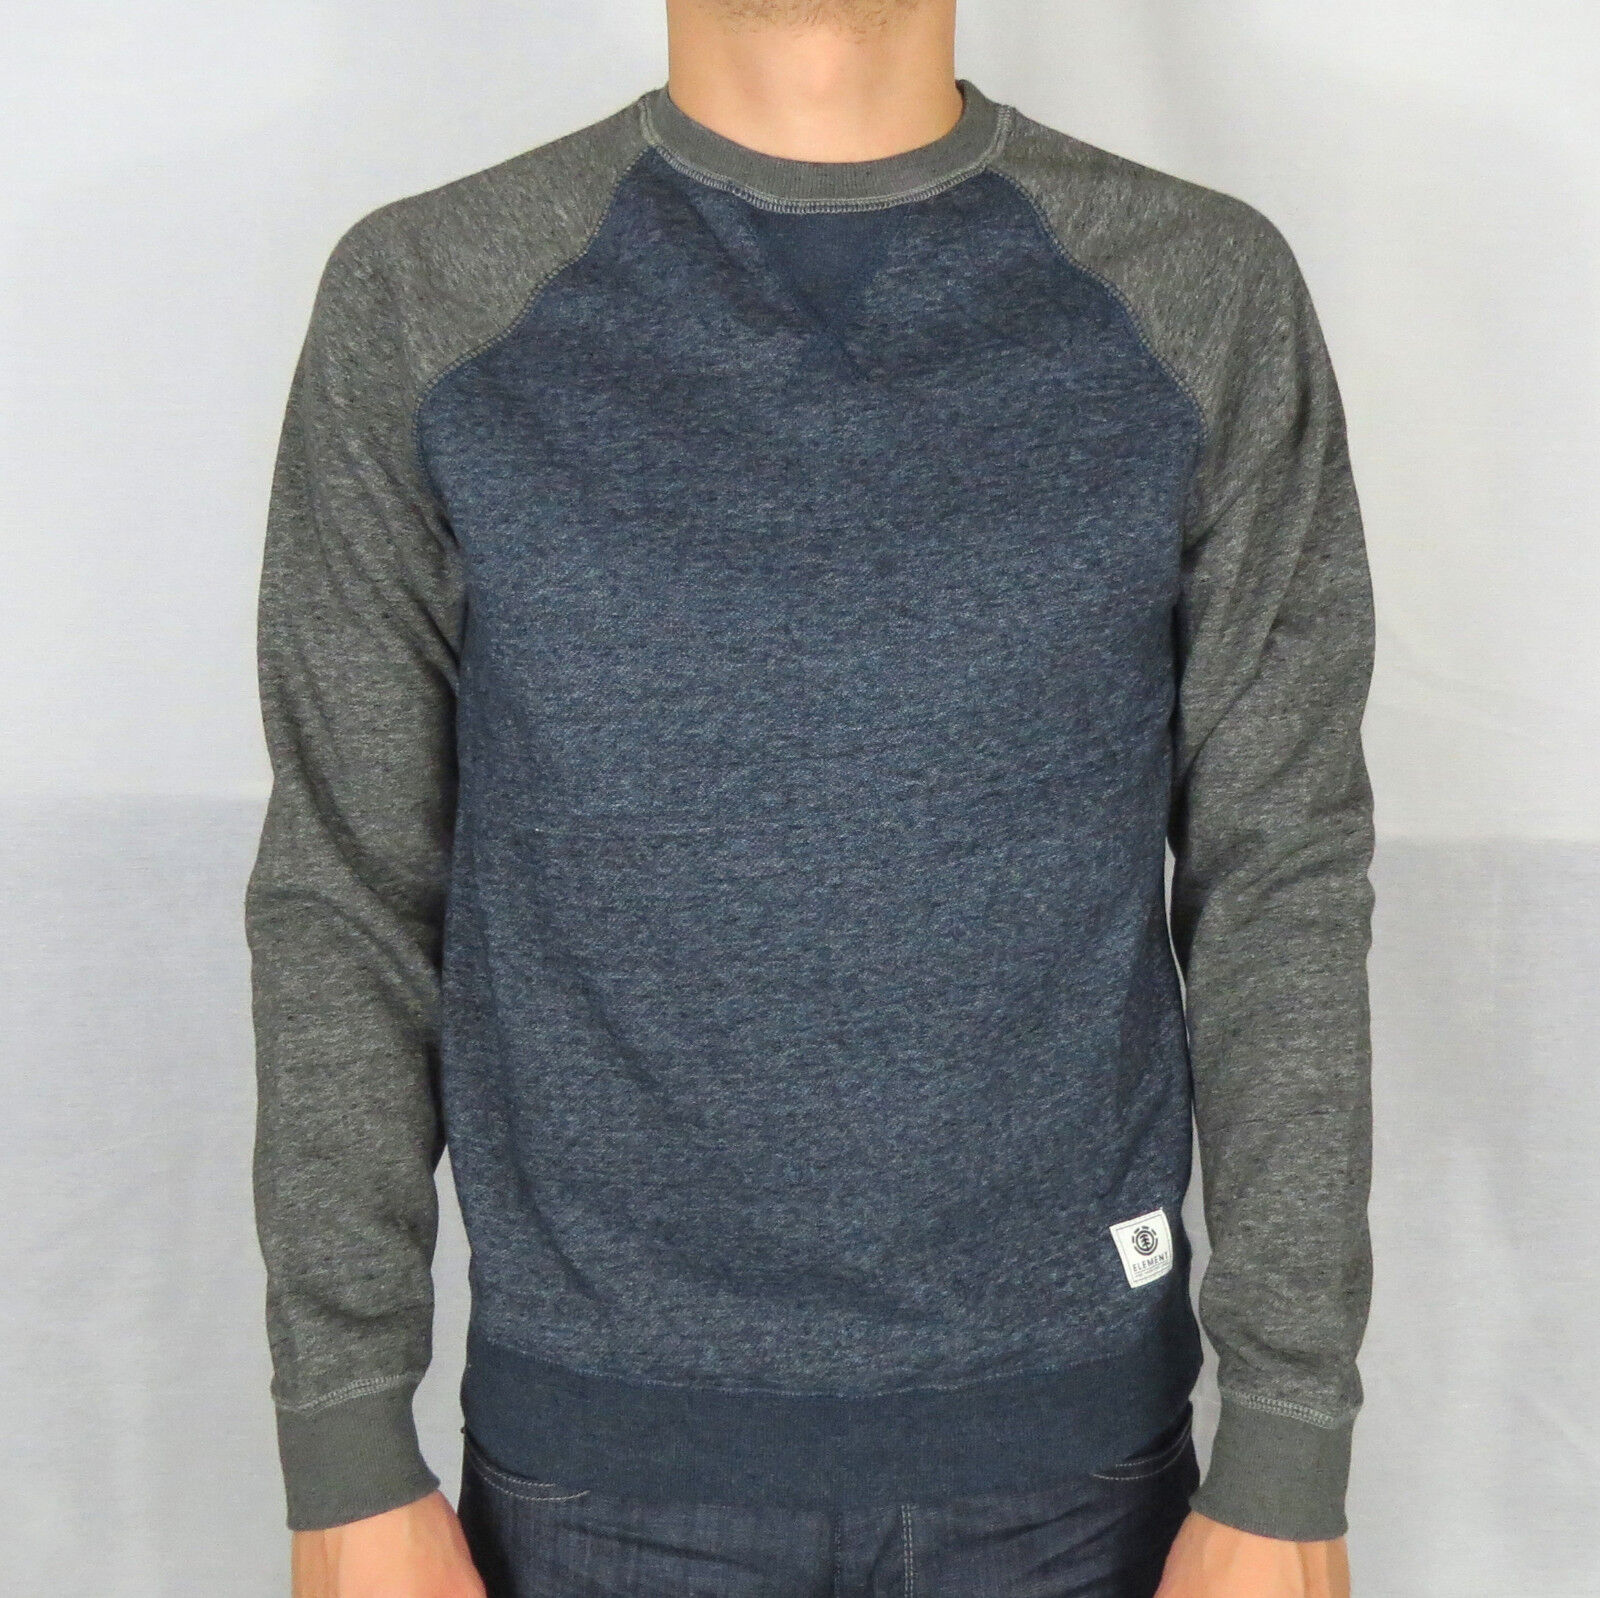 ELEMENT Meridian Block Sweatshirt Sweater Pulli indigo F1CRB2-ELF7-0120